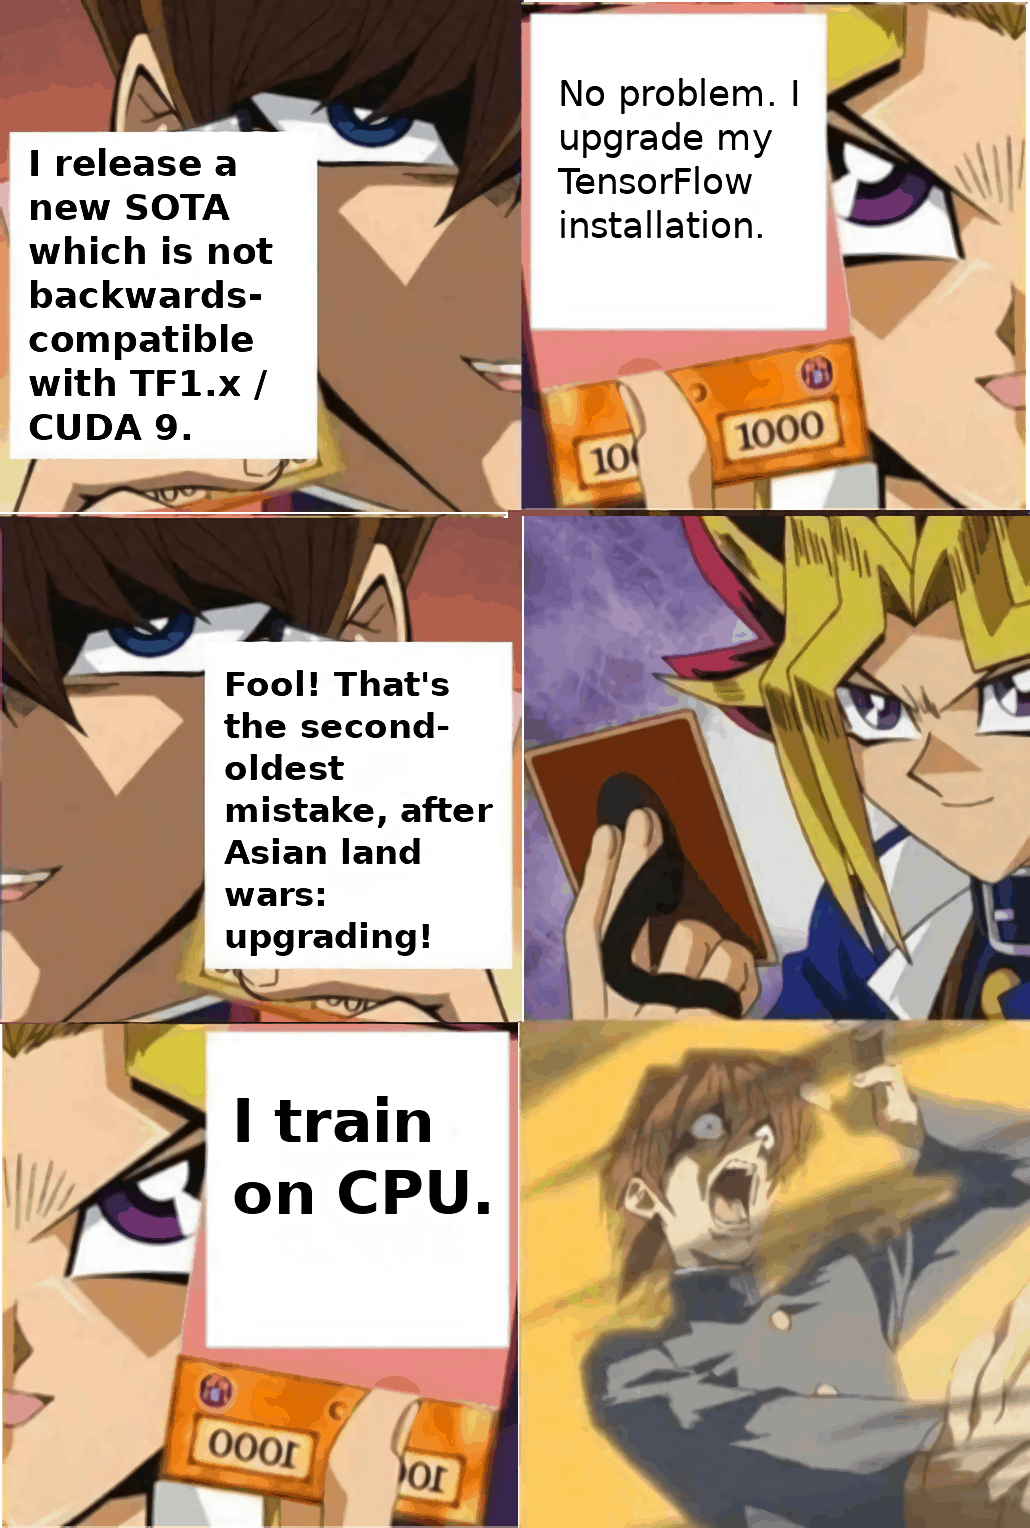 Yu-Gi-Oh meme: Kaiba vs Yugi. Kaiba attempts to trick Yugi into upgrading his Tensorflow installation, thereby risking breaking it permanently, as CUDA install problems are incomprehensible. Yugi upgrades, only for Kaiba to reveal his plan. However, it fails, as Yugi trains on CPU, accepting the extreme slowdown as the price for reliable software.